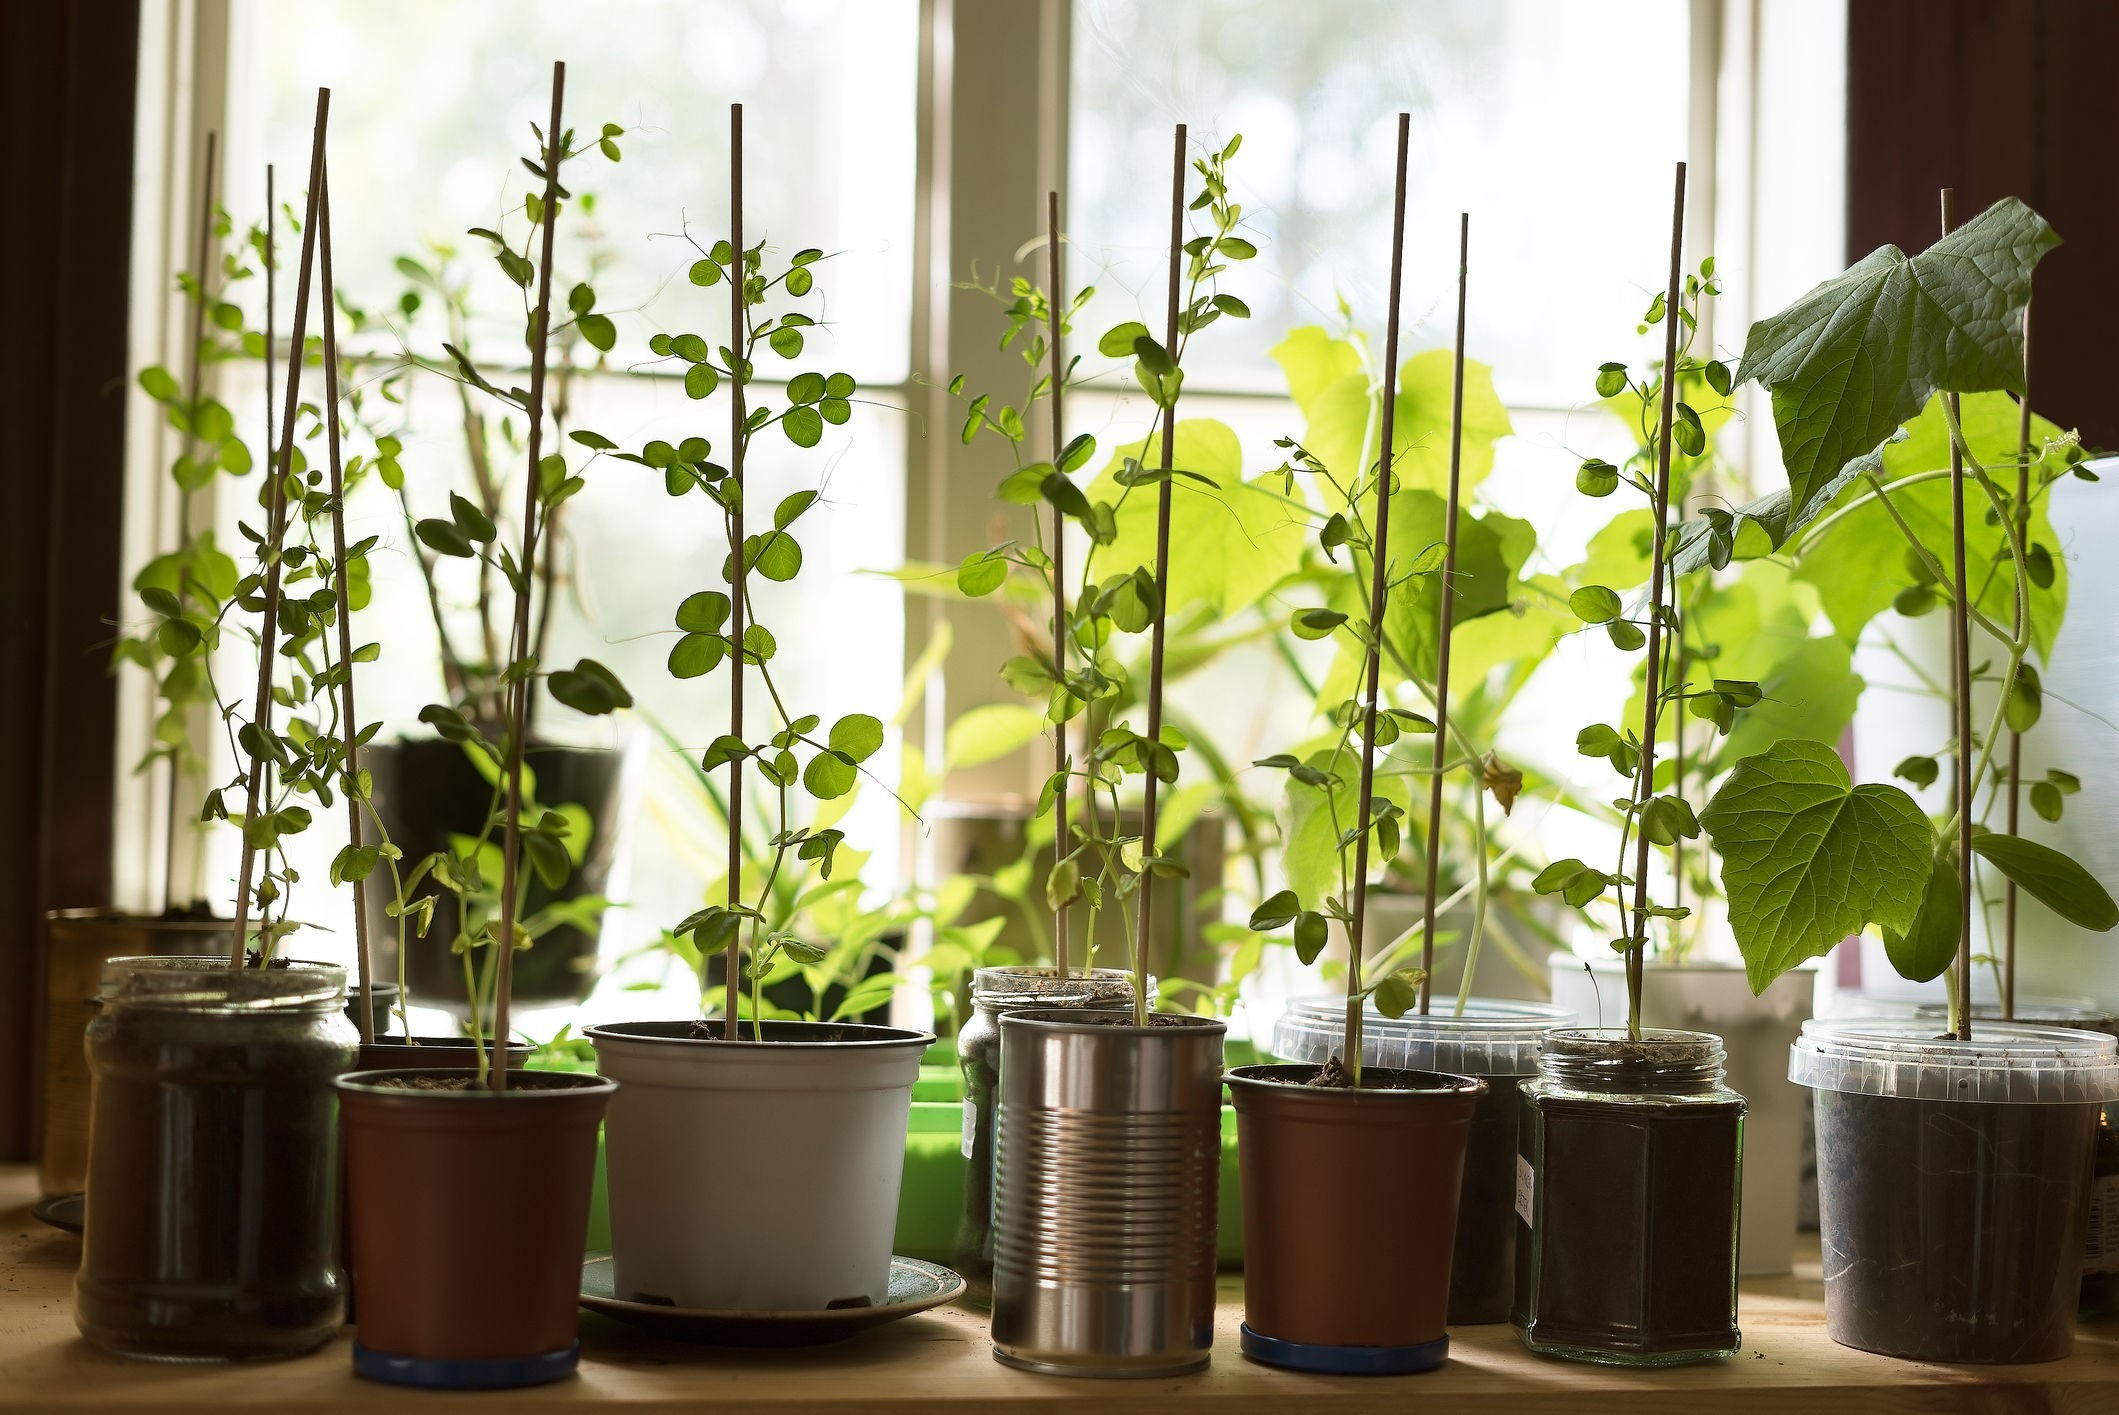 How to 'grow your own' in the smallest of spaces (even if you don't have a garden)